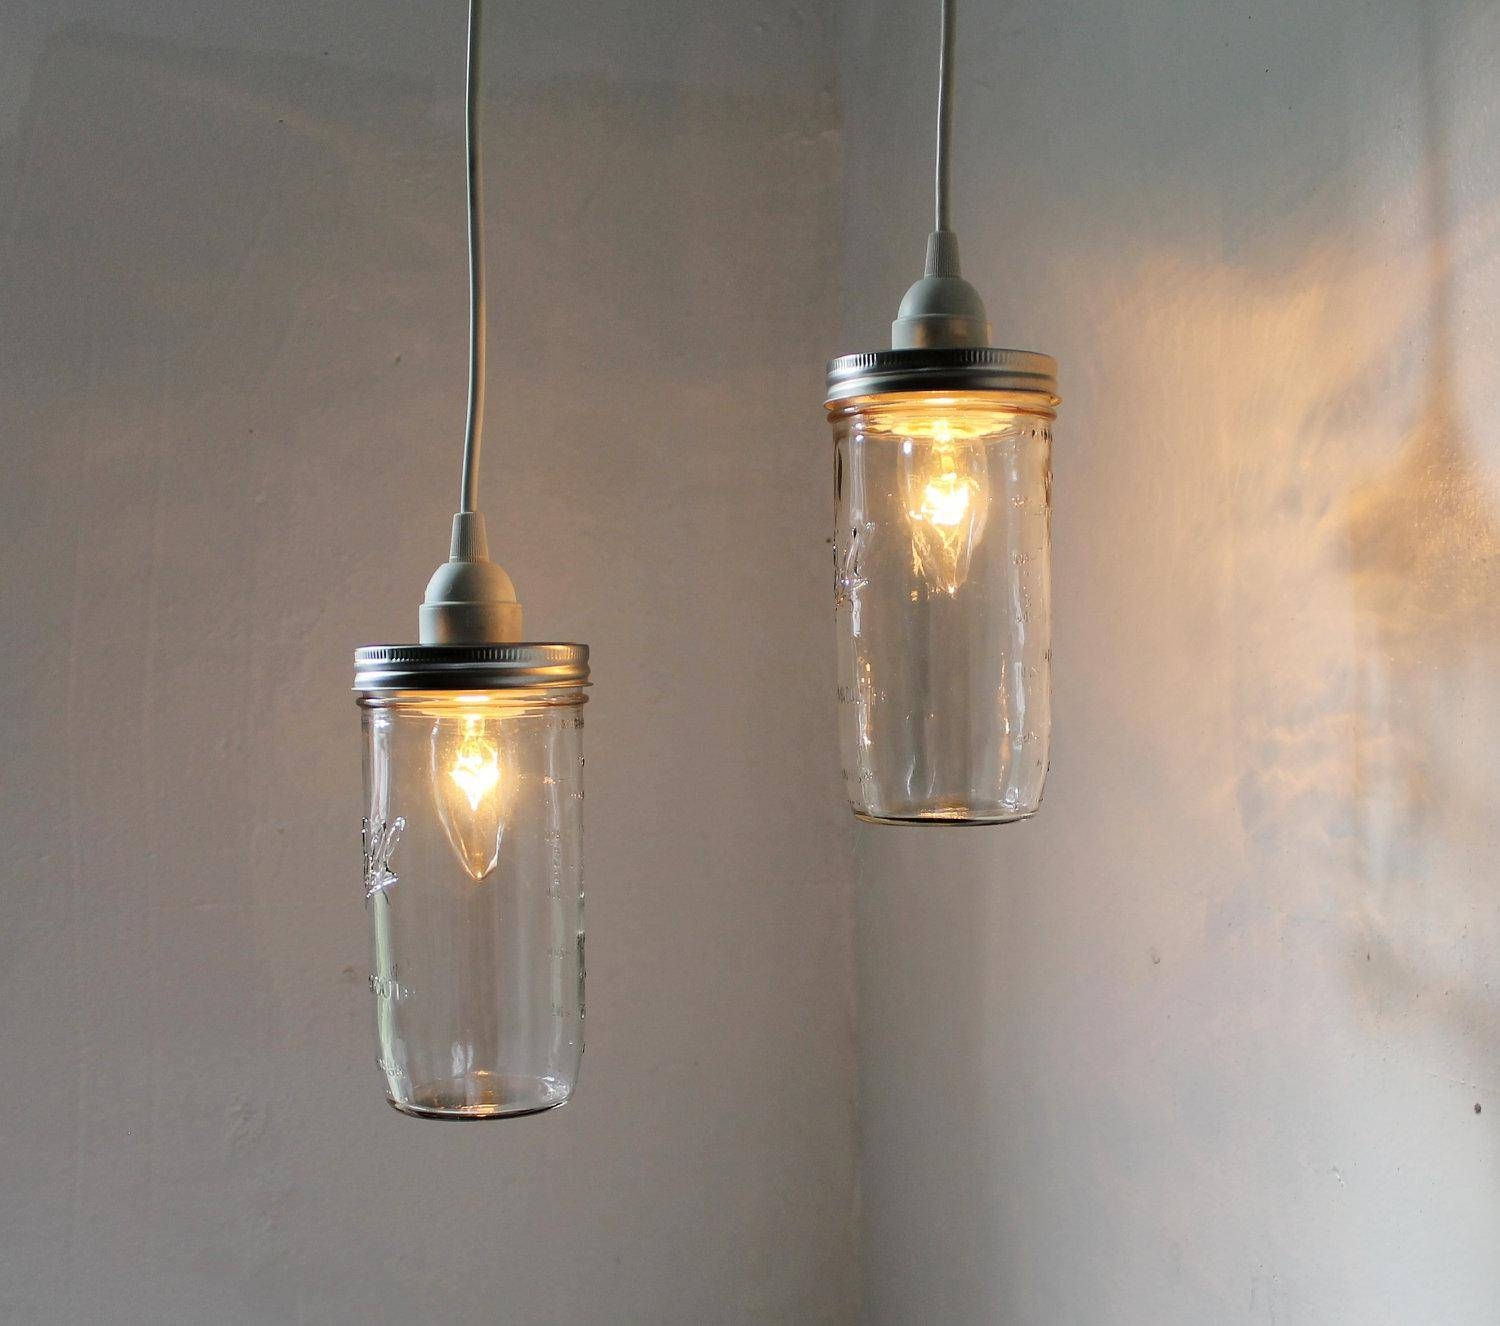 Modern Rustic Pendant Lighting - Hbwonong within Rustic Pendant Lighting (Image 6 of 15)